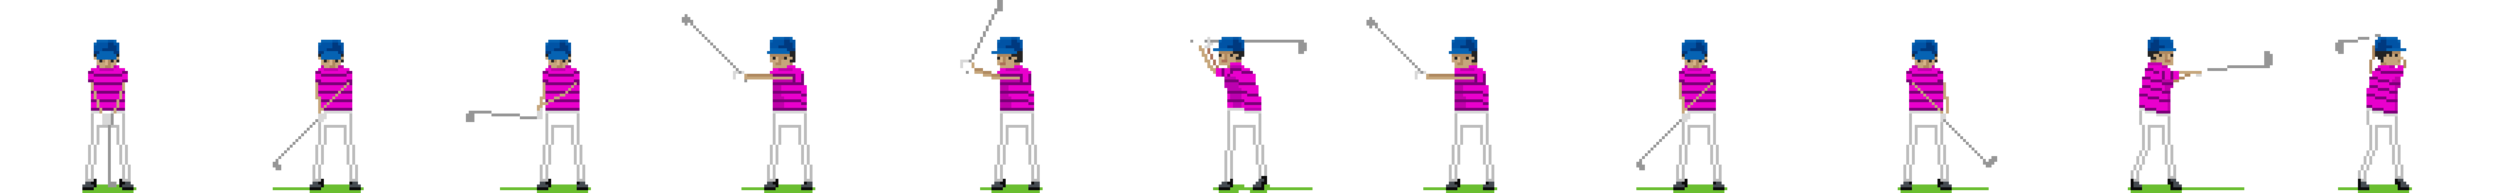 Sprite Sheet of Golfer Swinging.